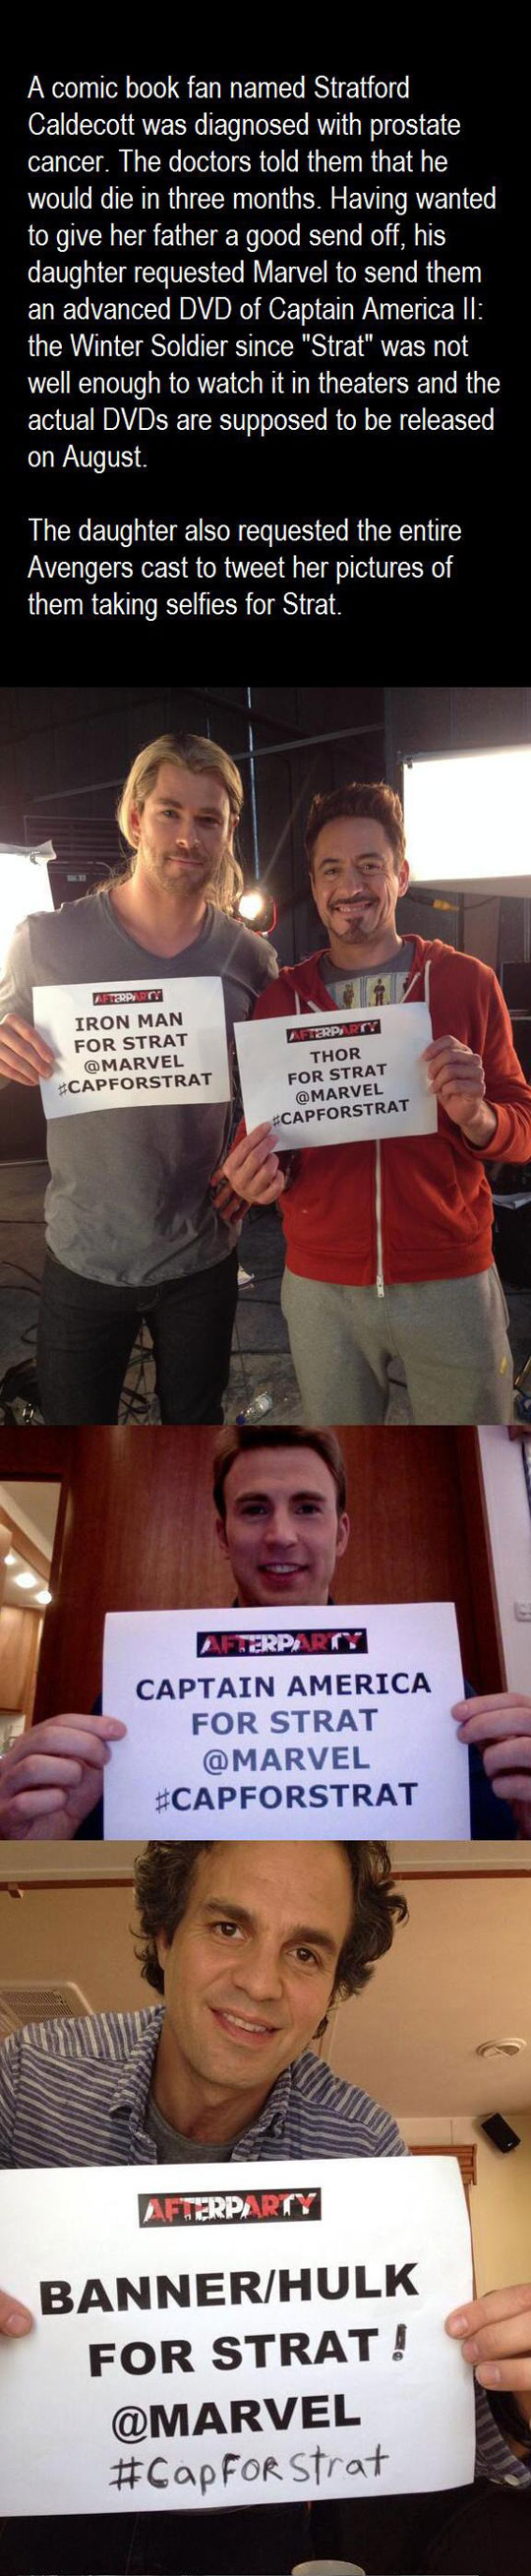 Avengers Selfie For Cancer Patient